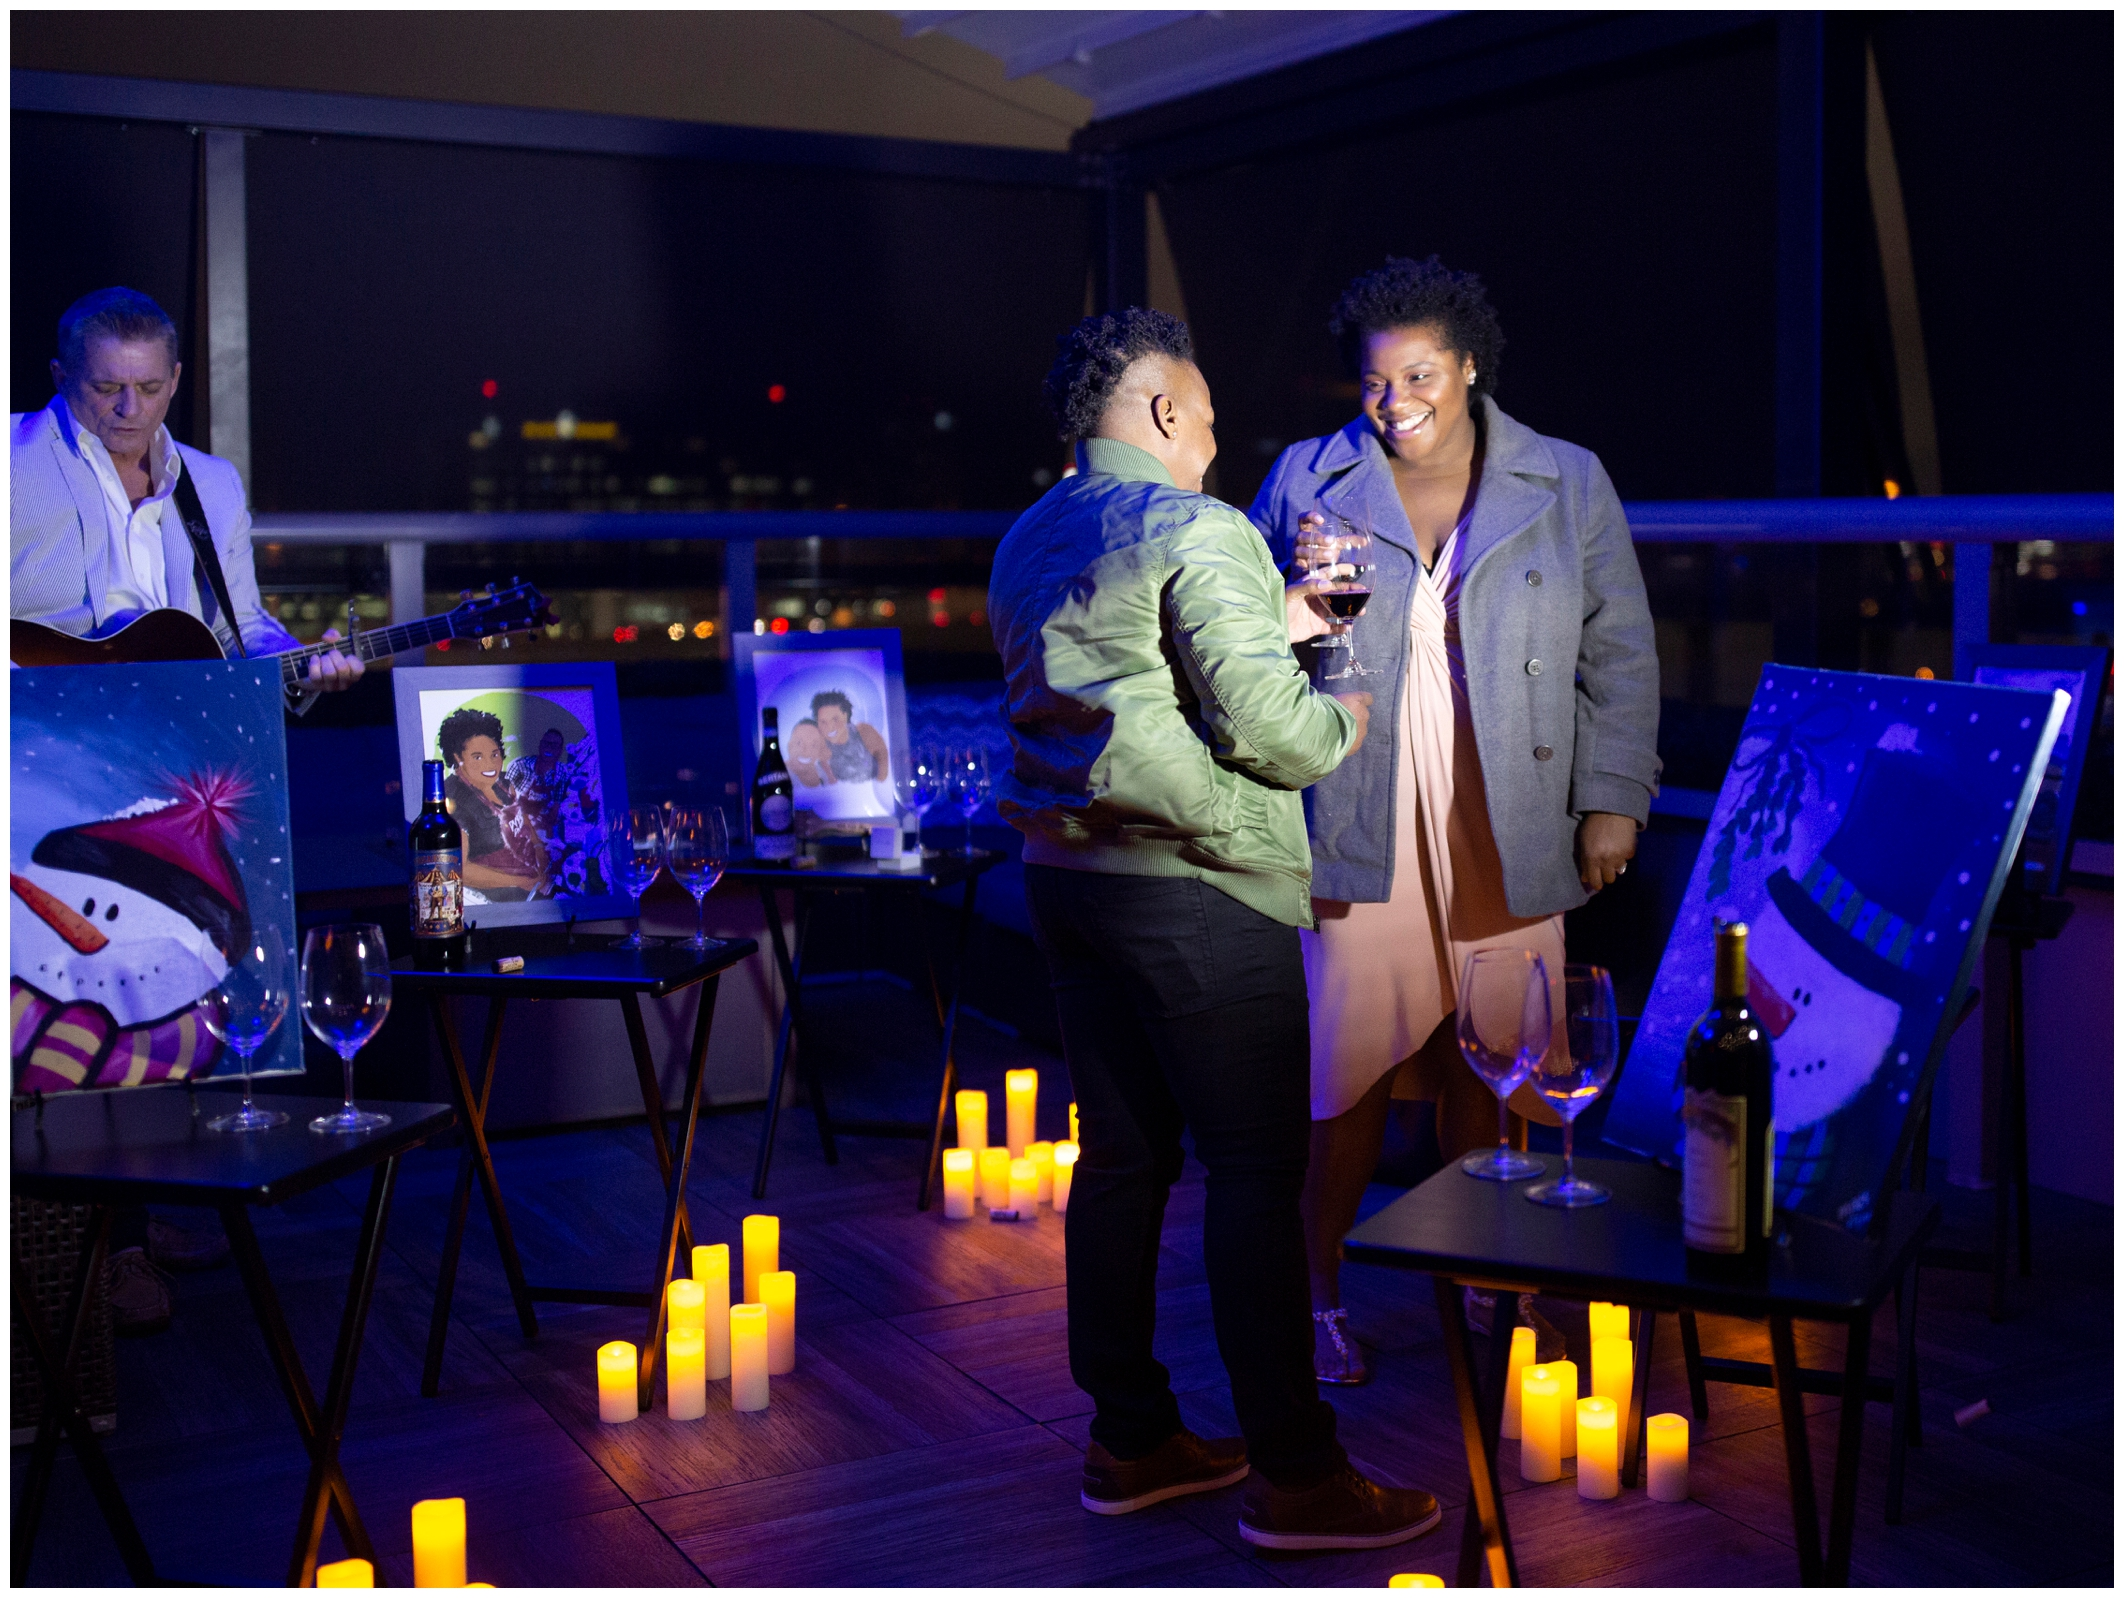 Surprise double proposal at river and post, jacksonville, florida - Lisa Silva Photography_0183.jpg